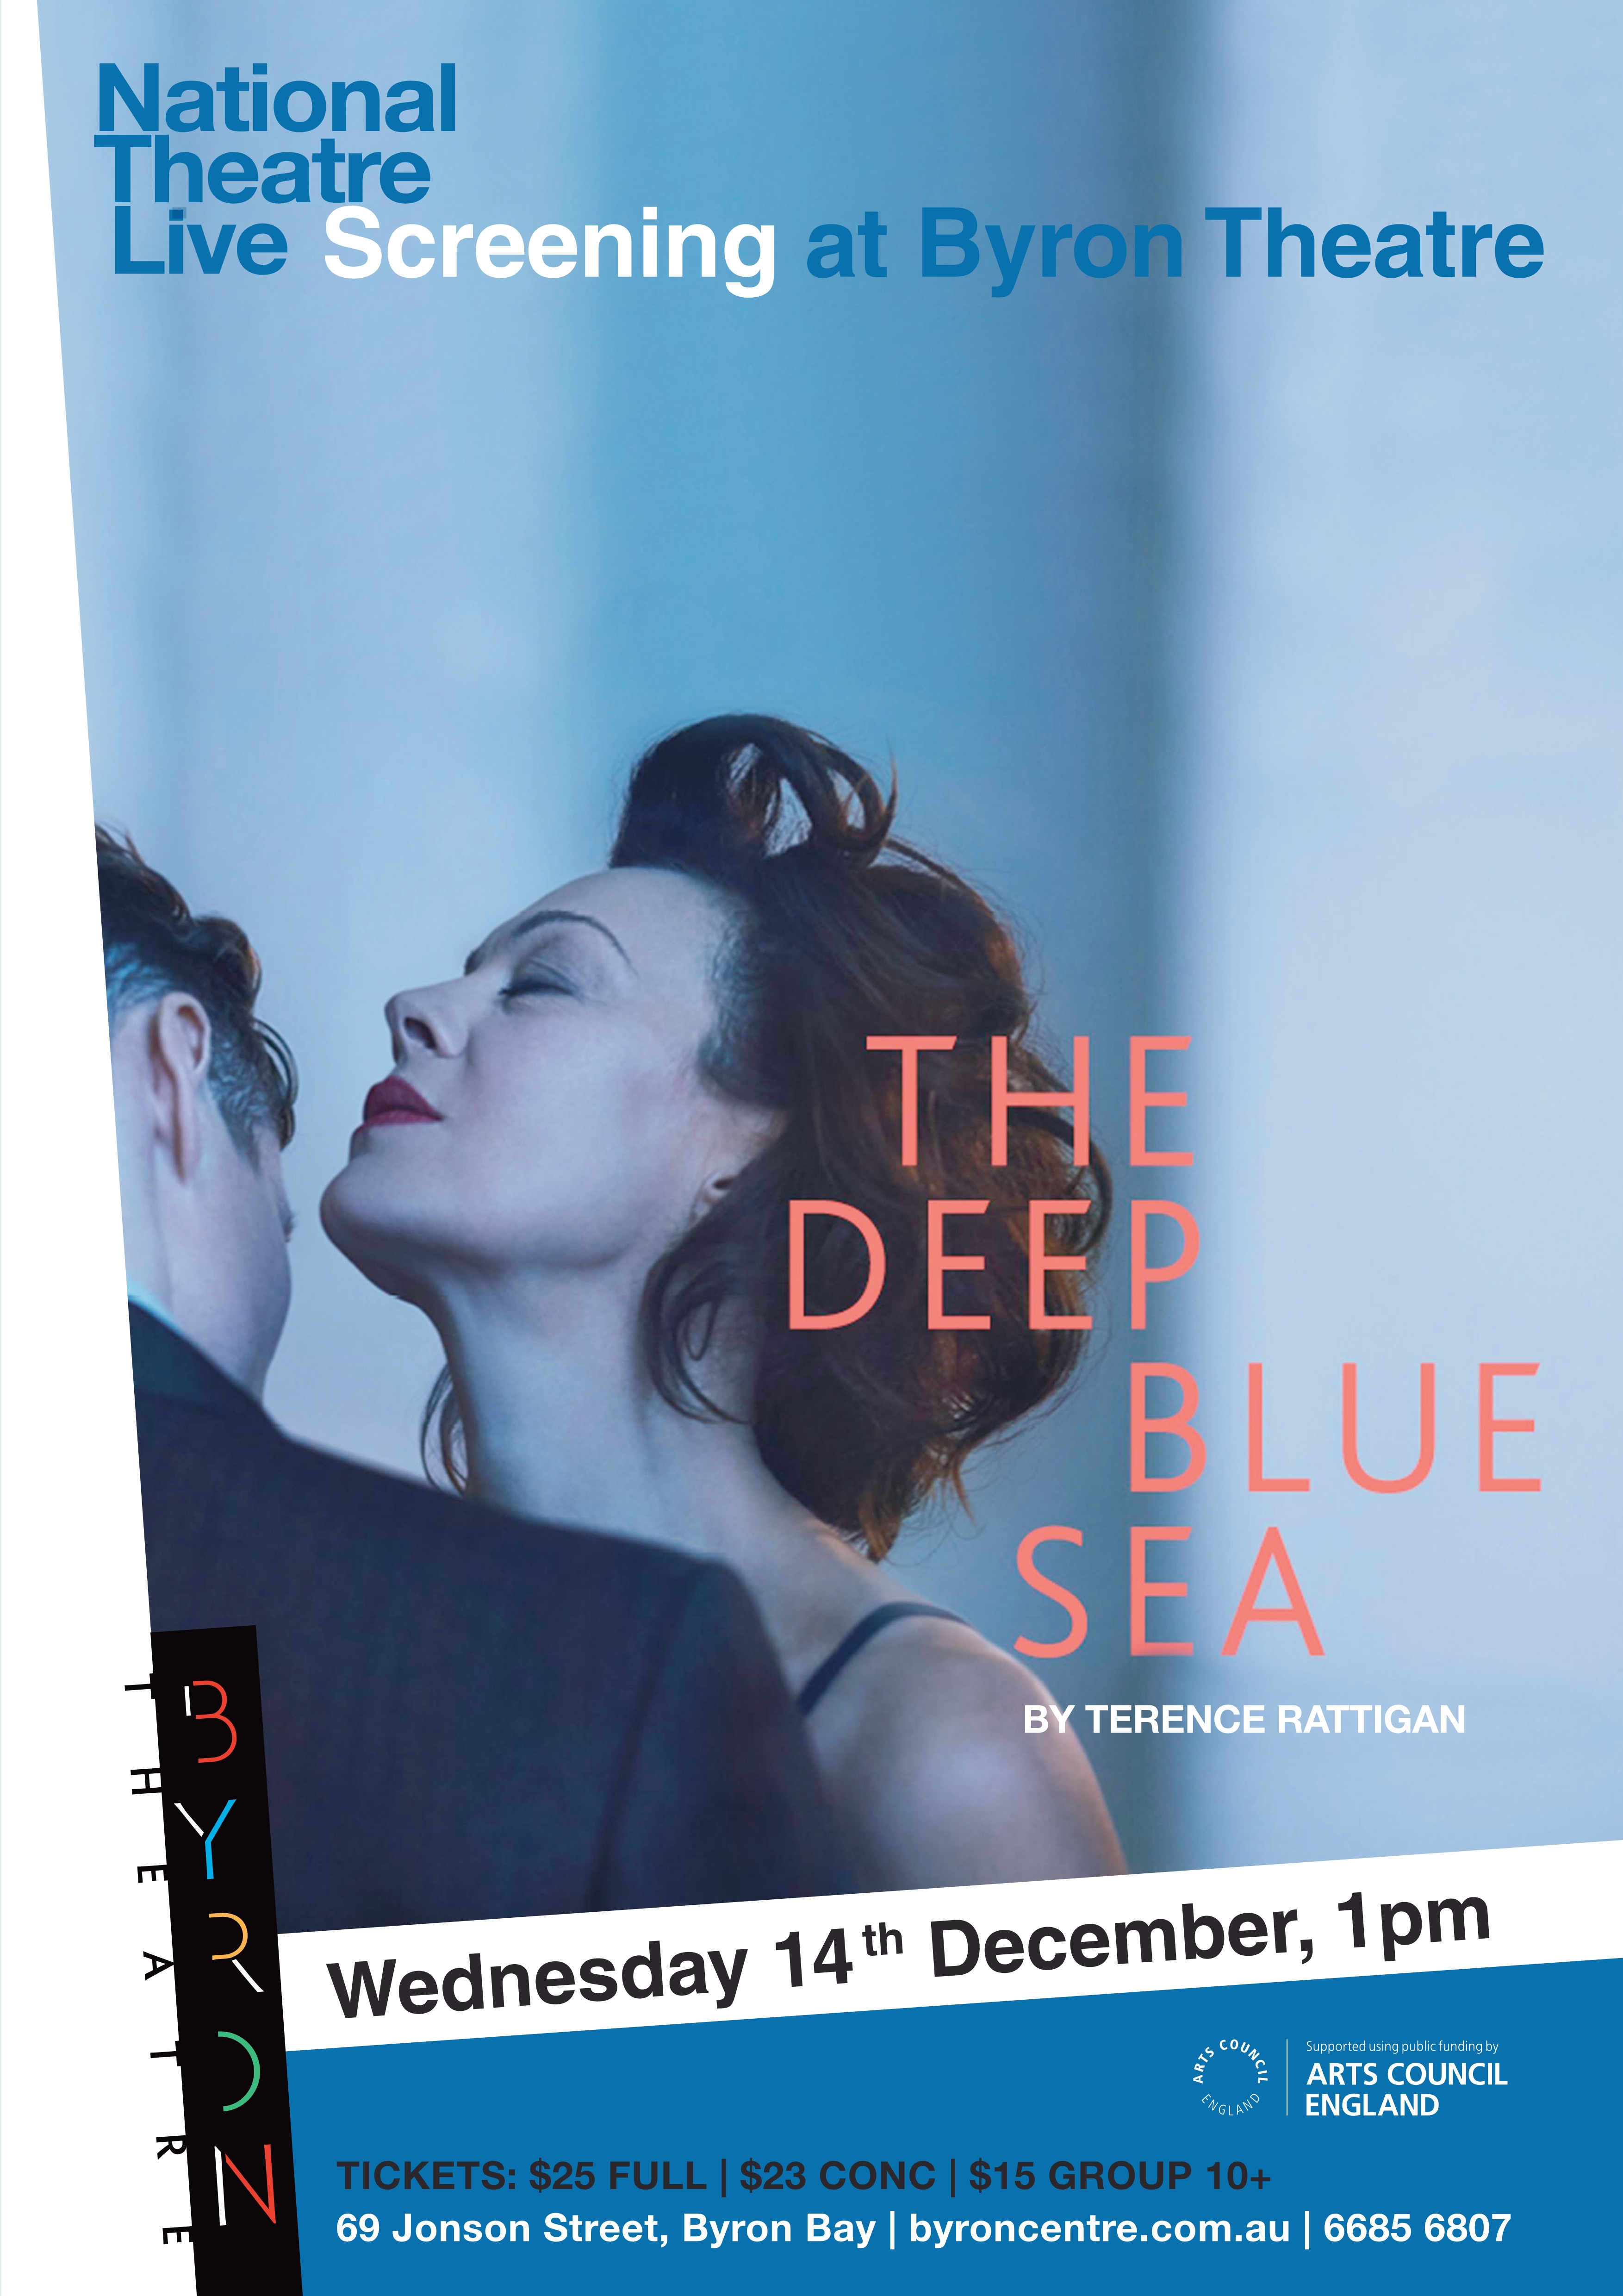 Flyer for The deep blue sea screening